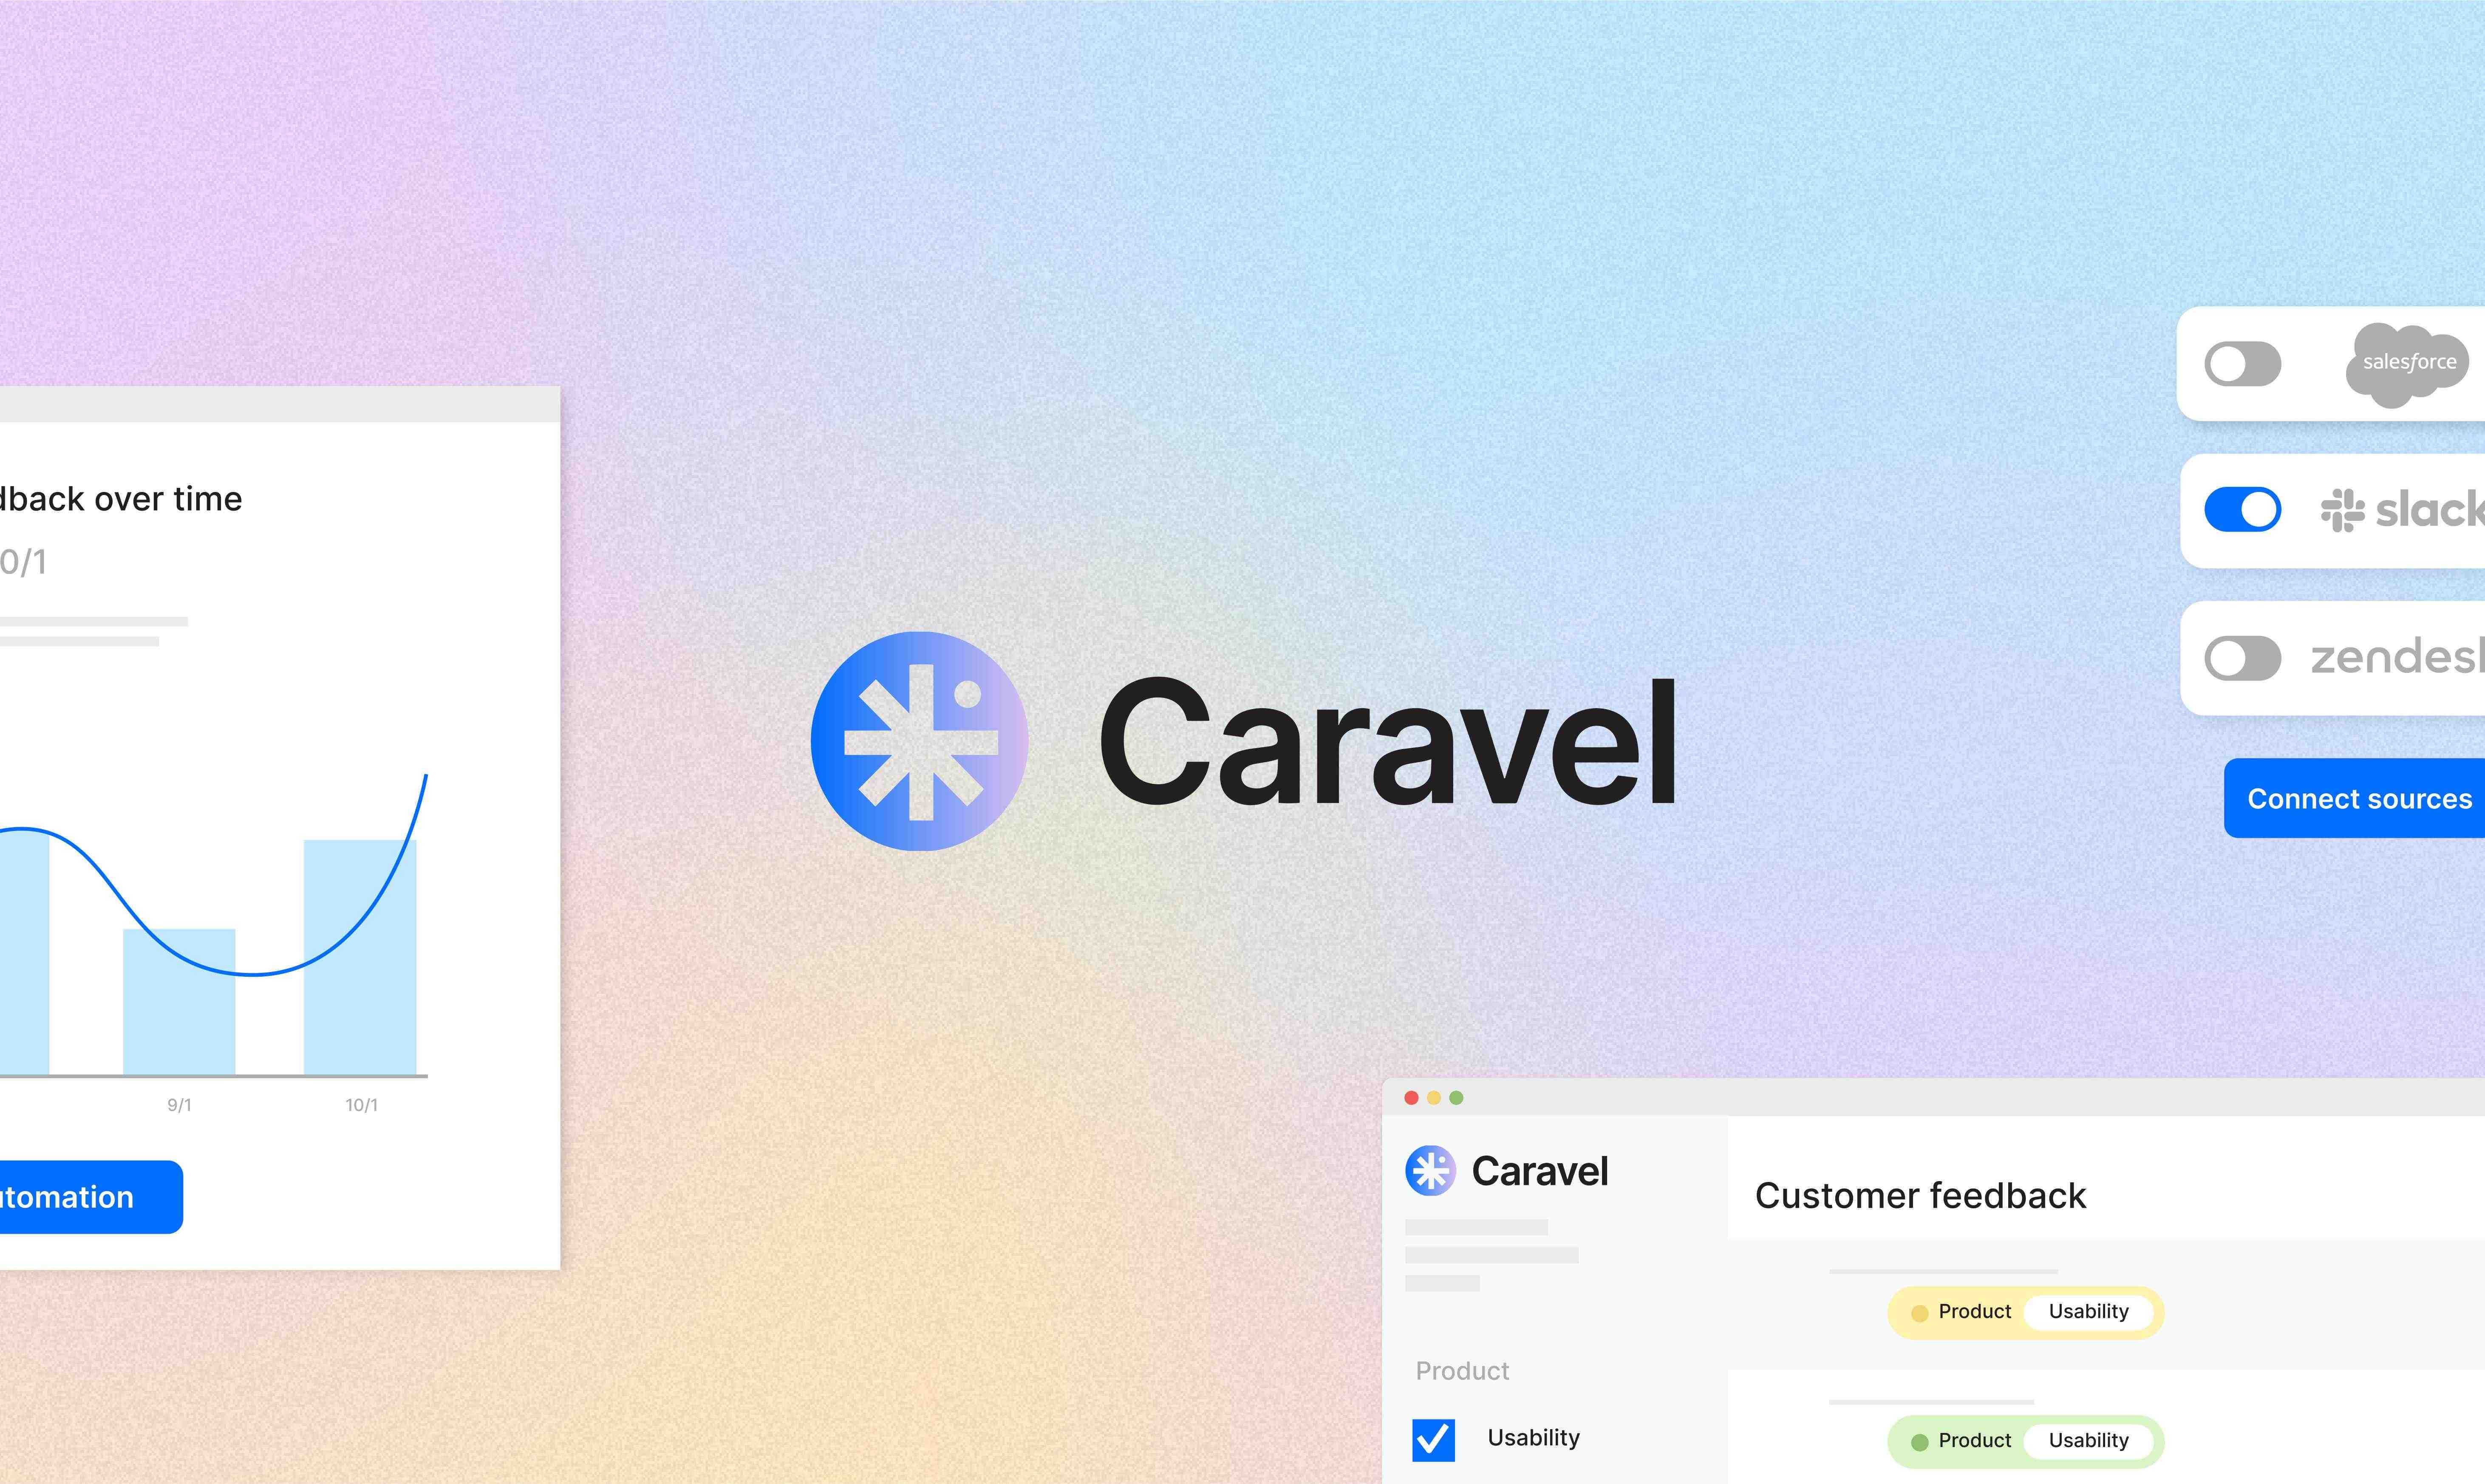 Caravel logo with UI and gradient in background